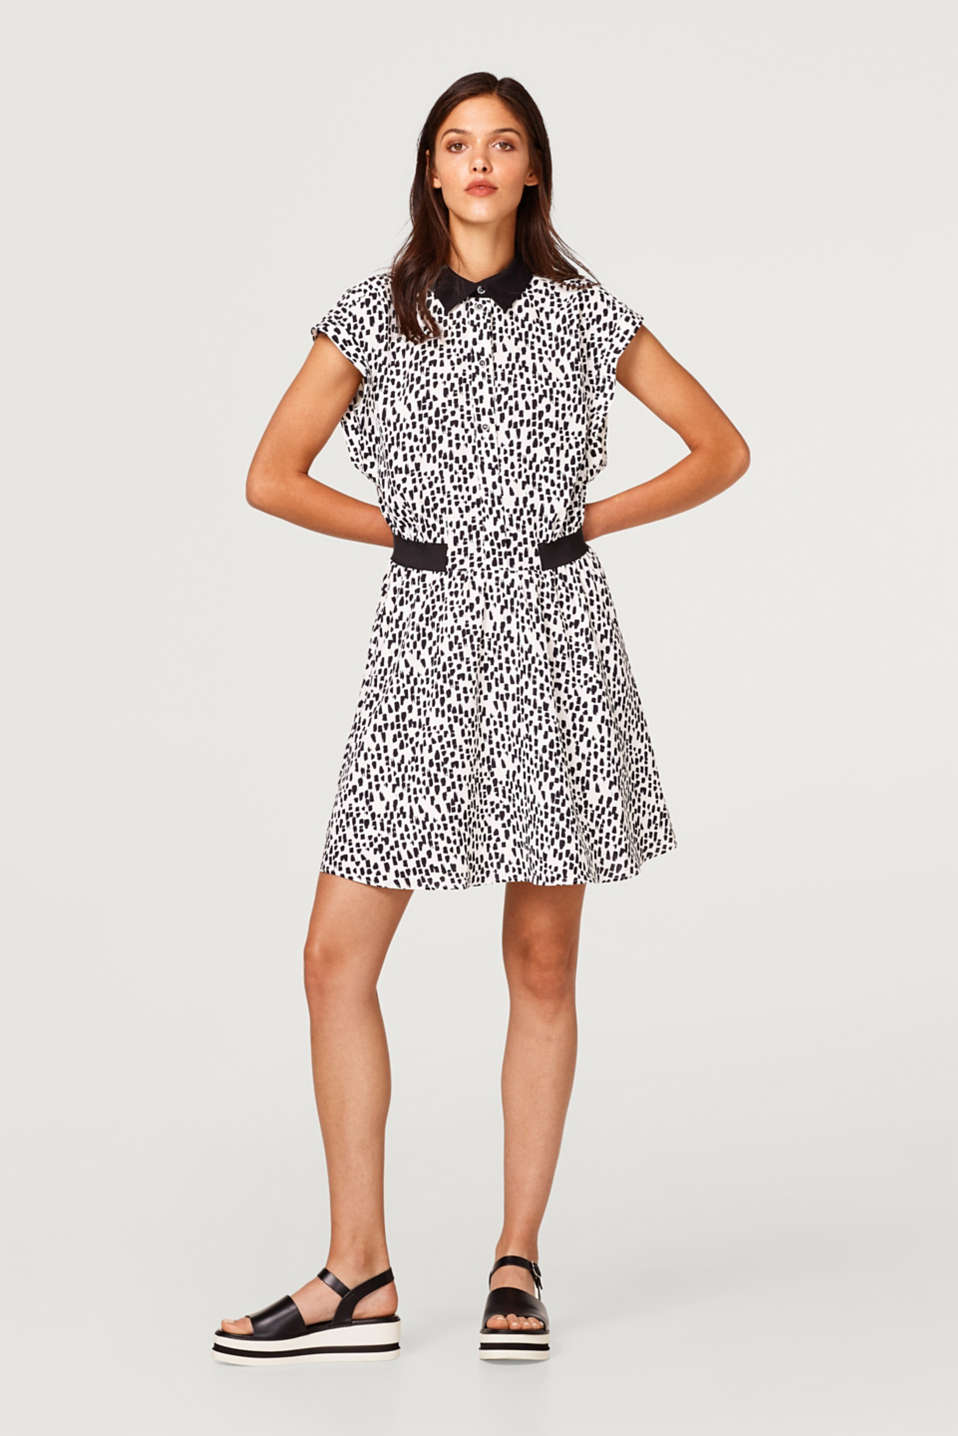 Crêpe dress with a collar and a trendy print